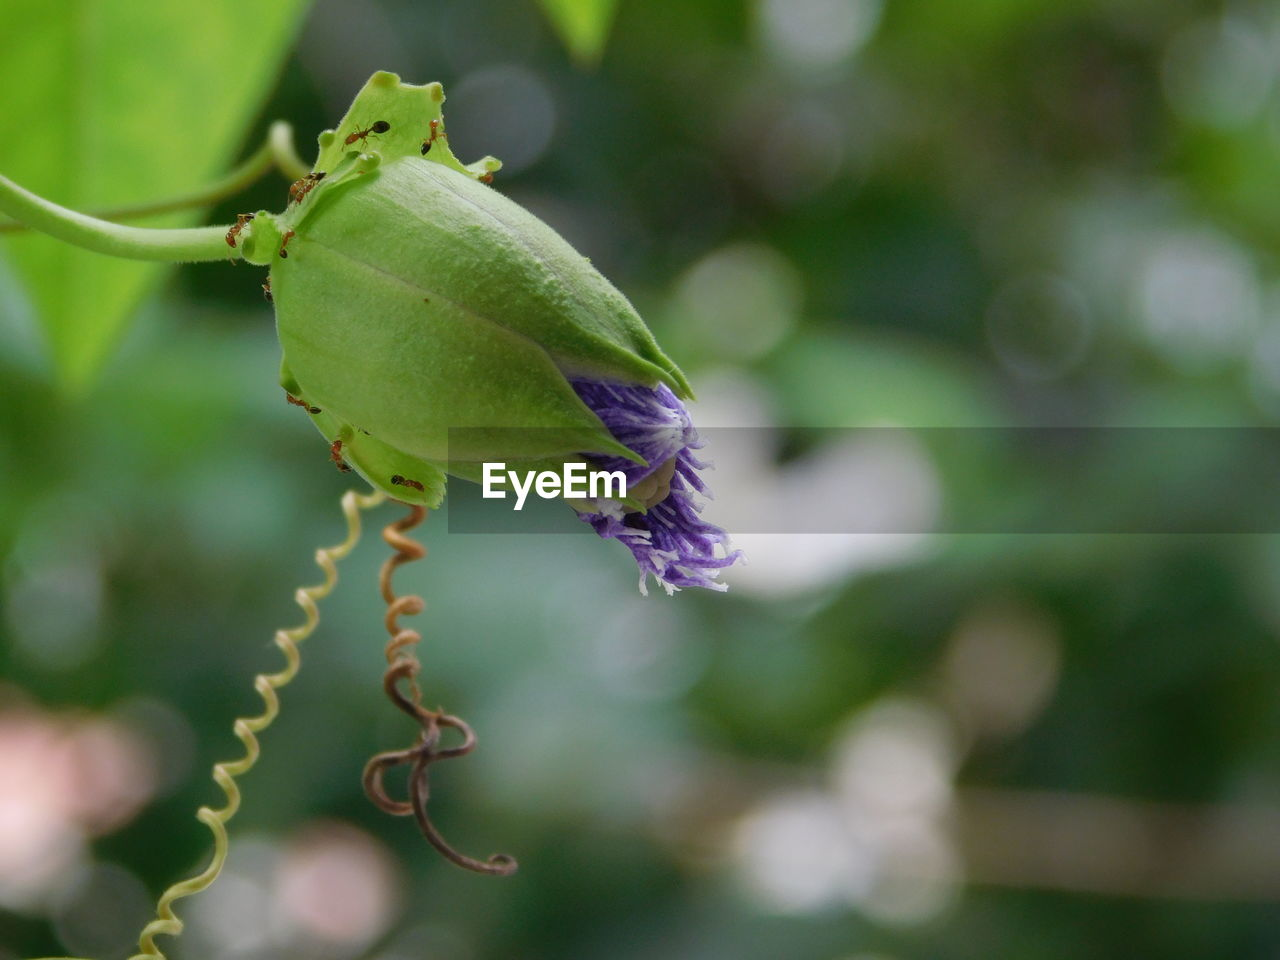 plant, growth, close-up, beauty in nature, green color, vulnerability, focus on foreground, freshness, no people, flower, flowering plant, fragility, nature, bud, day, beginnings, plant part, leaf, plant stem, outdoors, flower head, purple, sepal